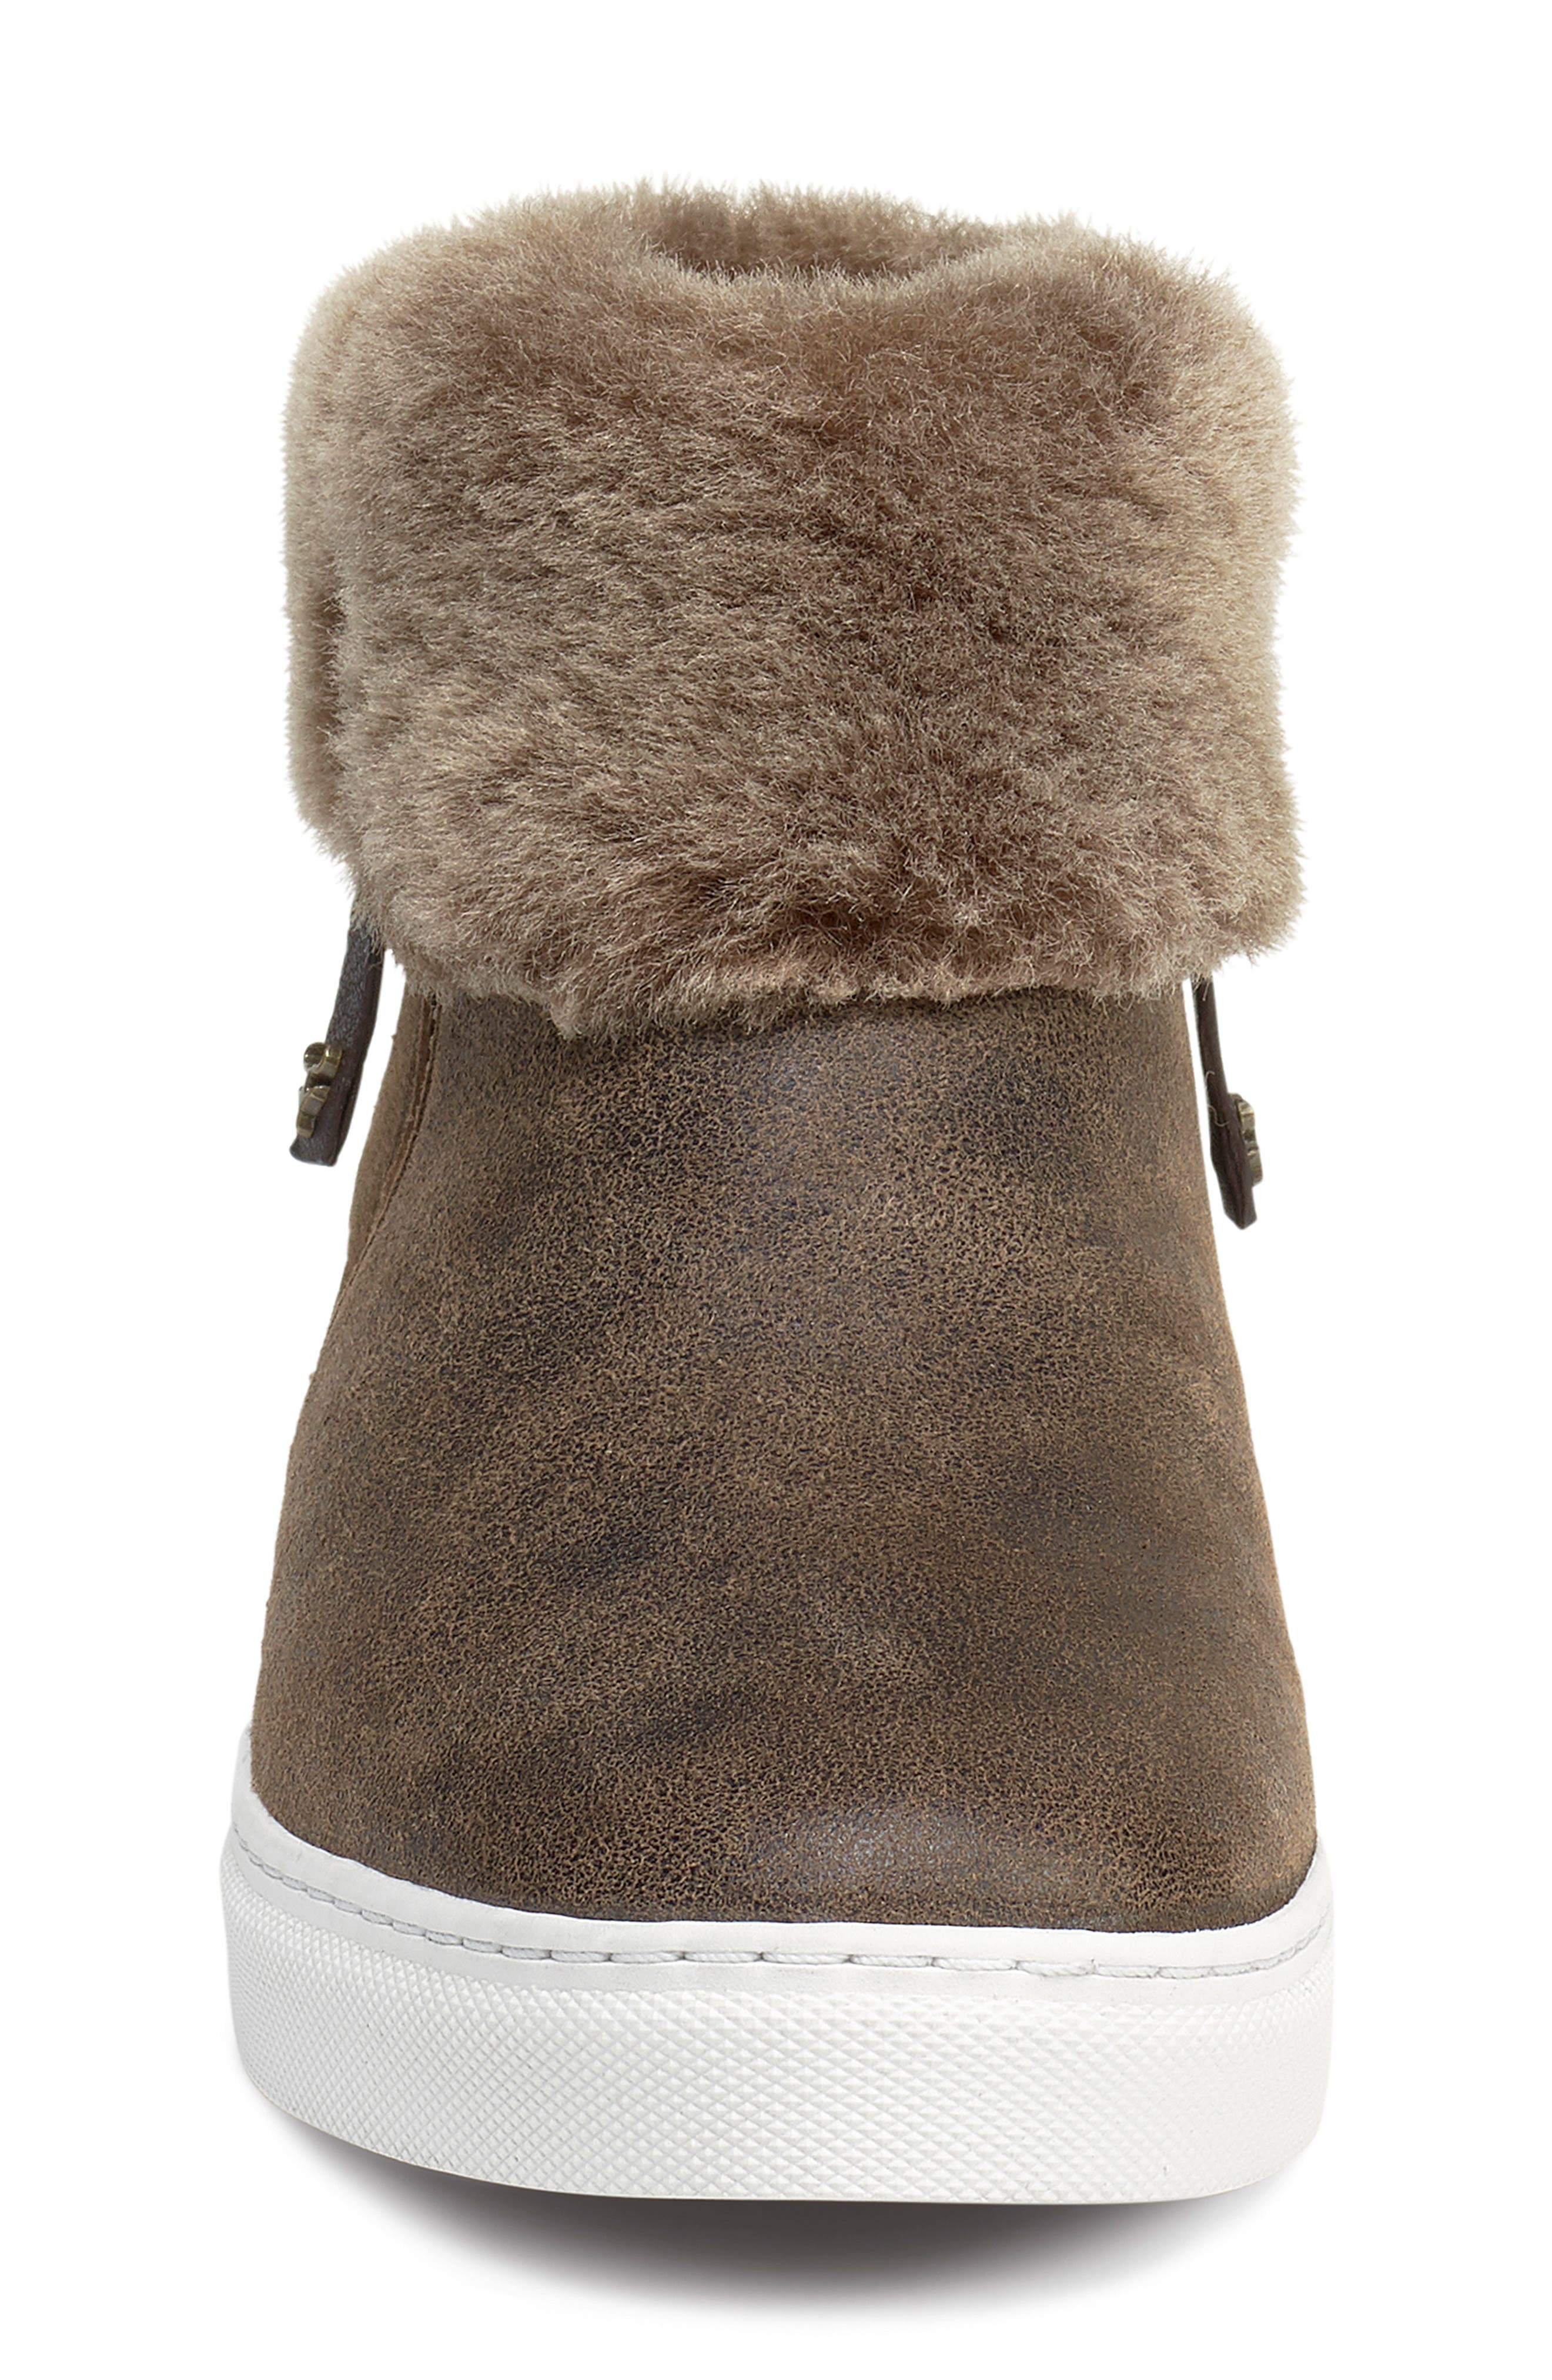 TRASK, Lexi Genuine Shearling Sneaker, Alternate thumbnail 4, color, BROWN LEATHER